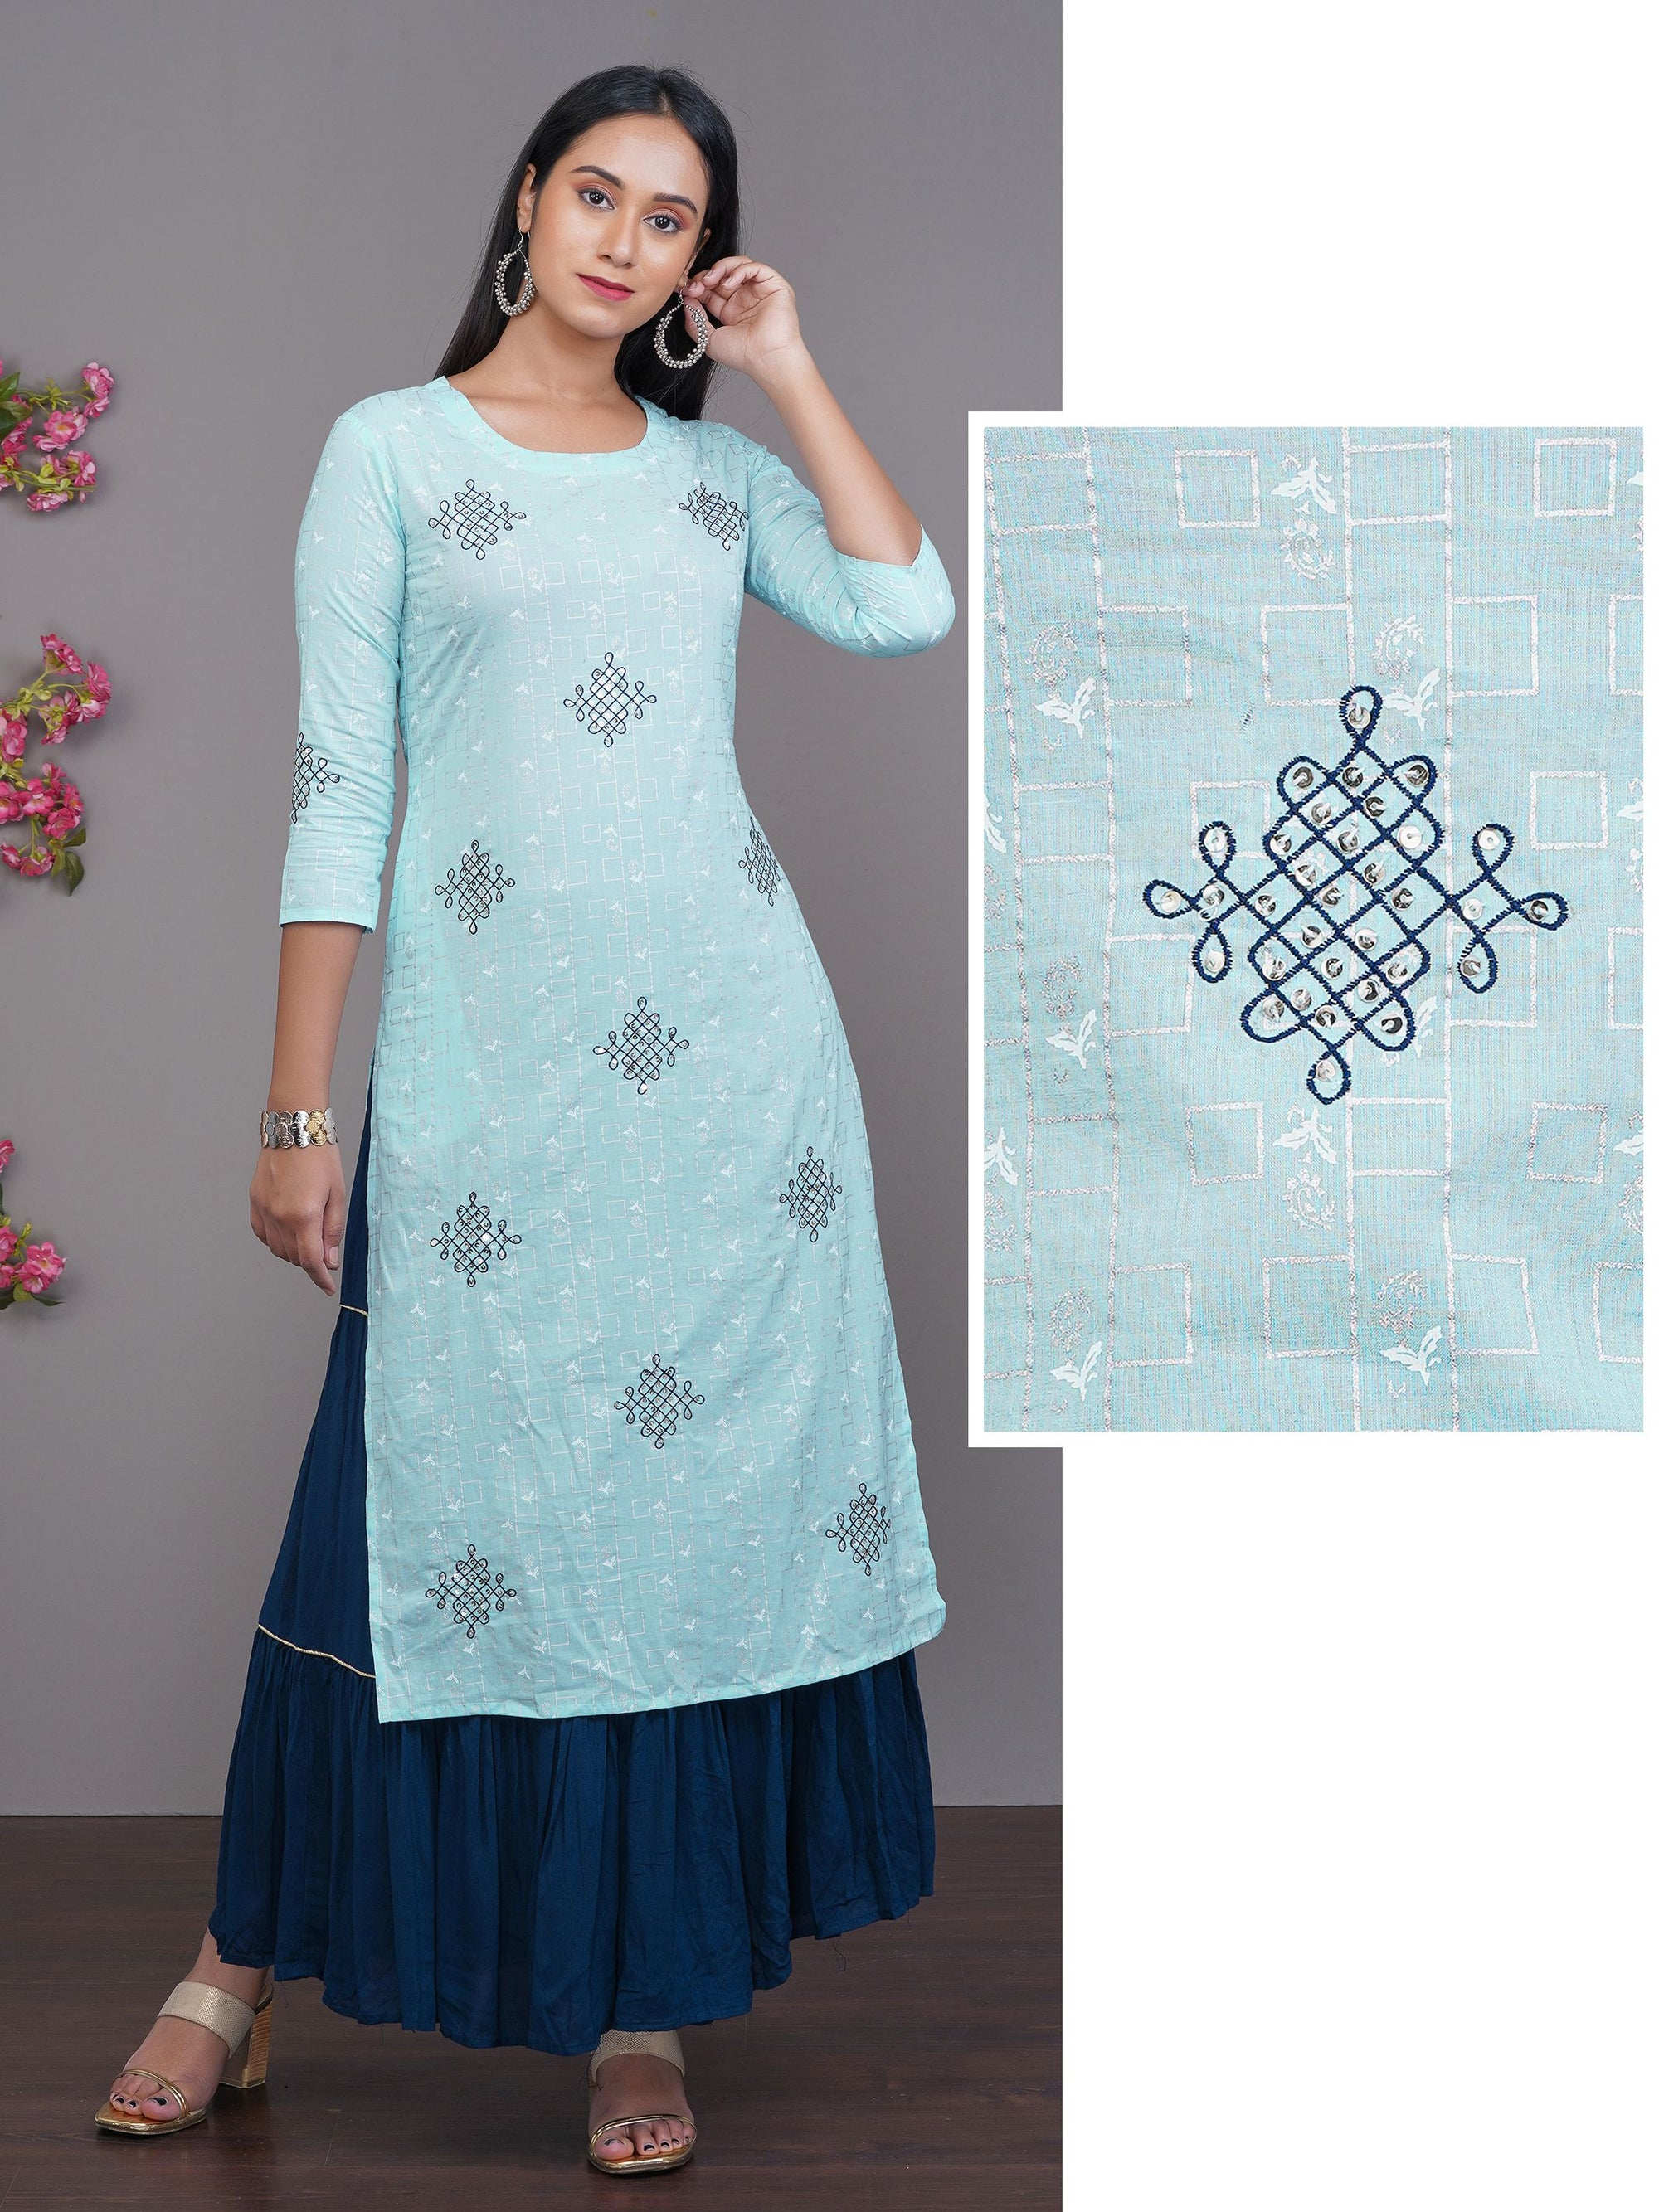 Geometric & Paisley Printed Kurti With Embroidered Motif Embellished with Sequins all over Kurti – Sky Blue